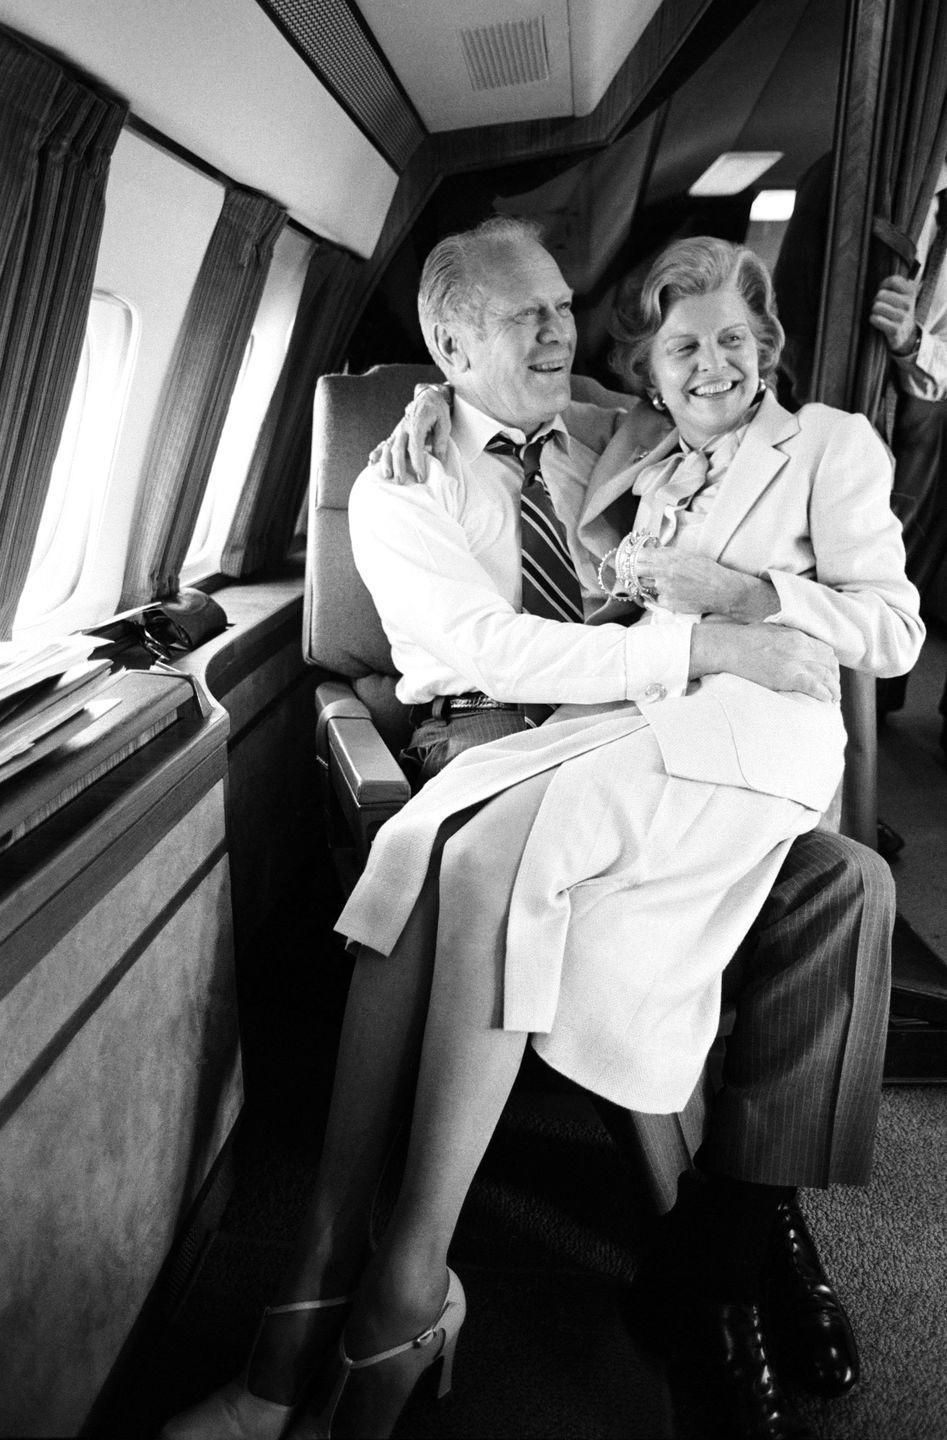 <p>President Gerald R. Ford and his wife Betty Ford share a moment during a flight en route to Oman in 1979. </p>